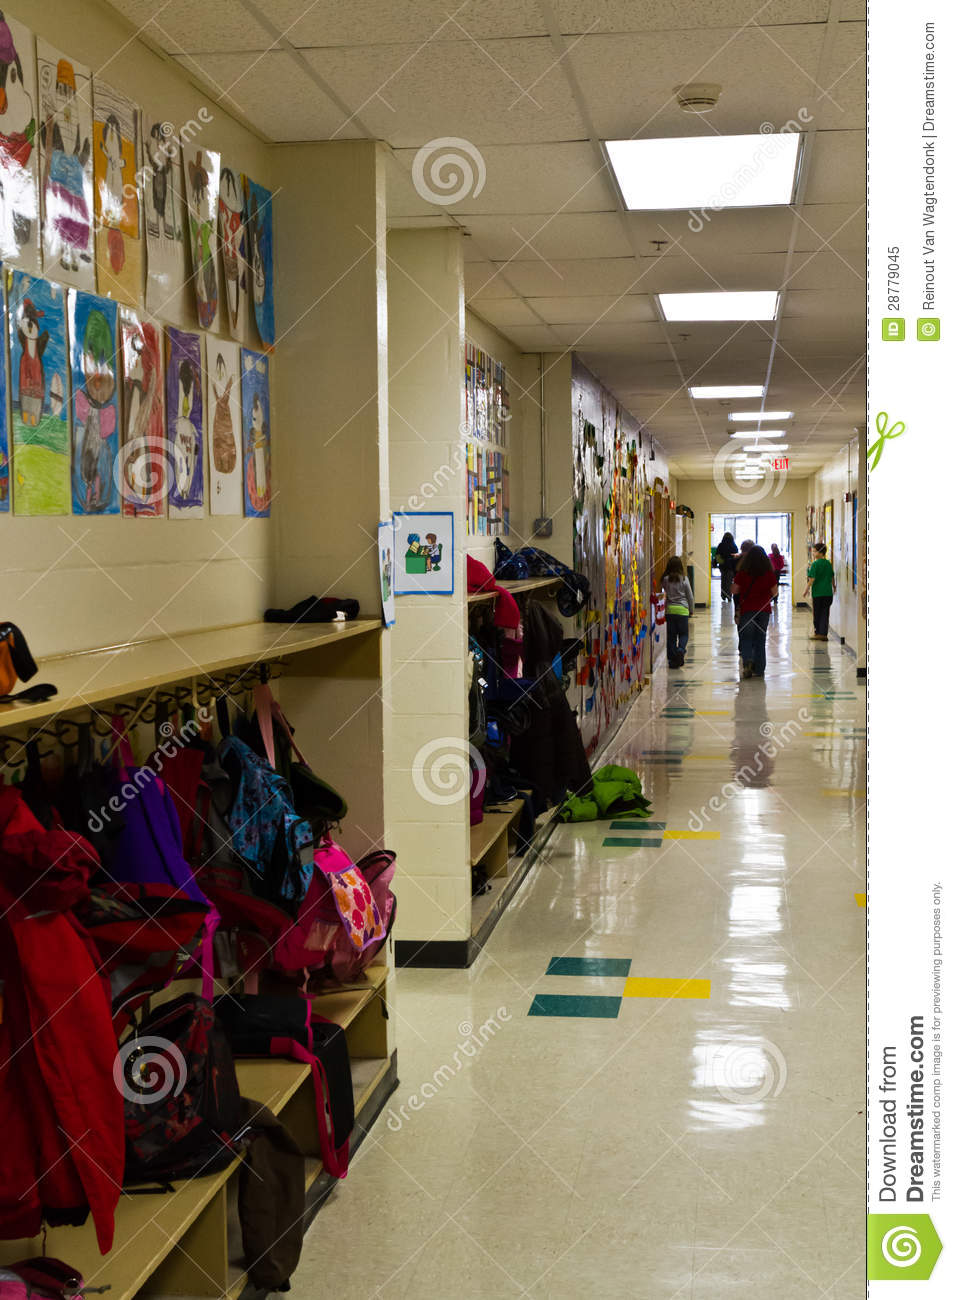 Elementary School Hallway Stock Image Image Of Artwork